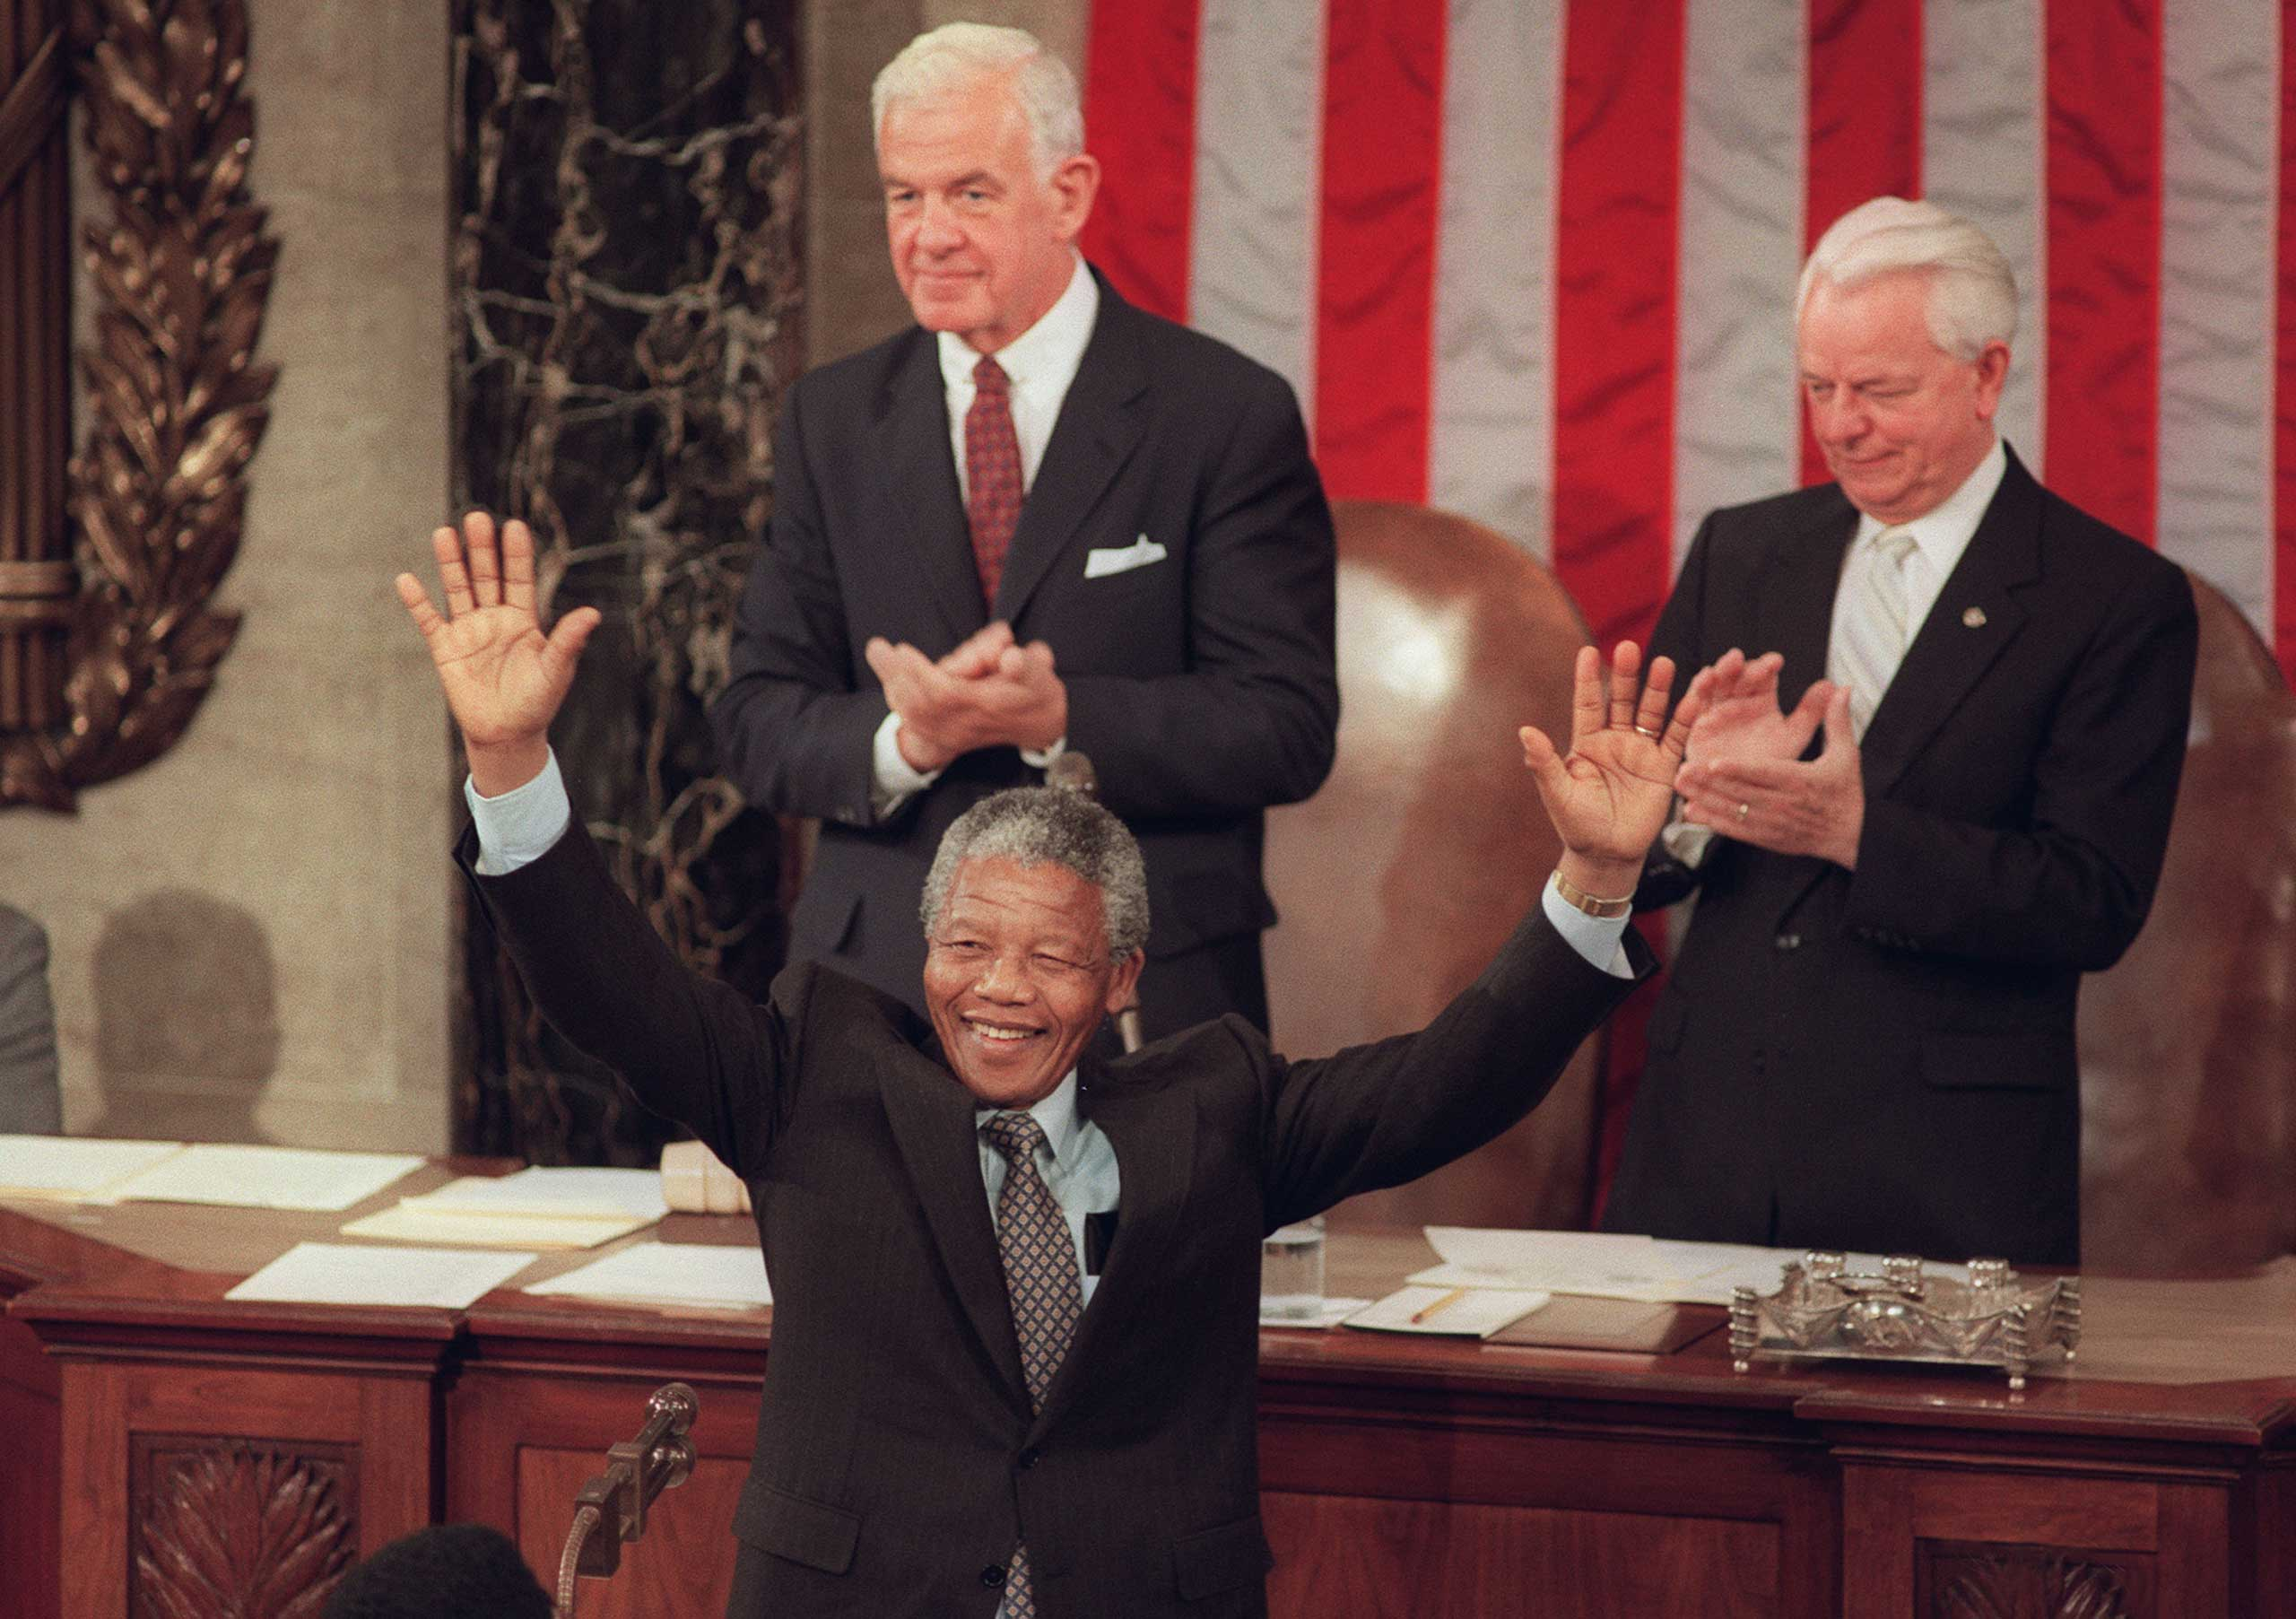 <b>Nelson Mandela </b> addresses Congress on June 26, 1990. At the time, he was president of the African National Congress. Apartheid was still law in South Africa and Mandela had only just been released from prison a few months before his appearance before lawmakers.